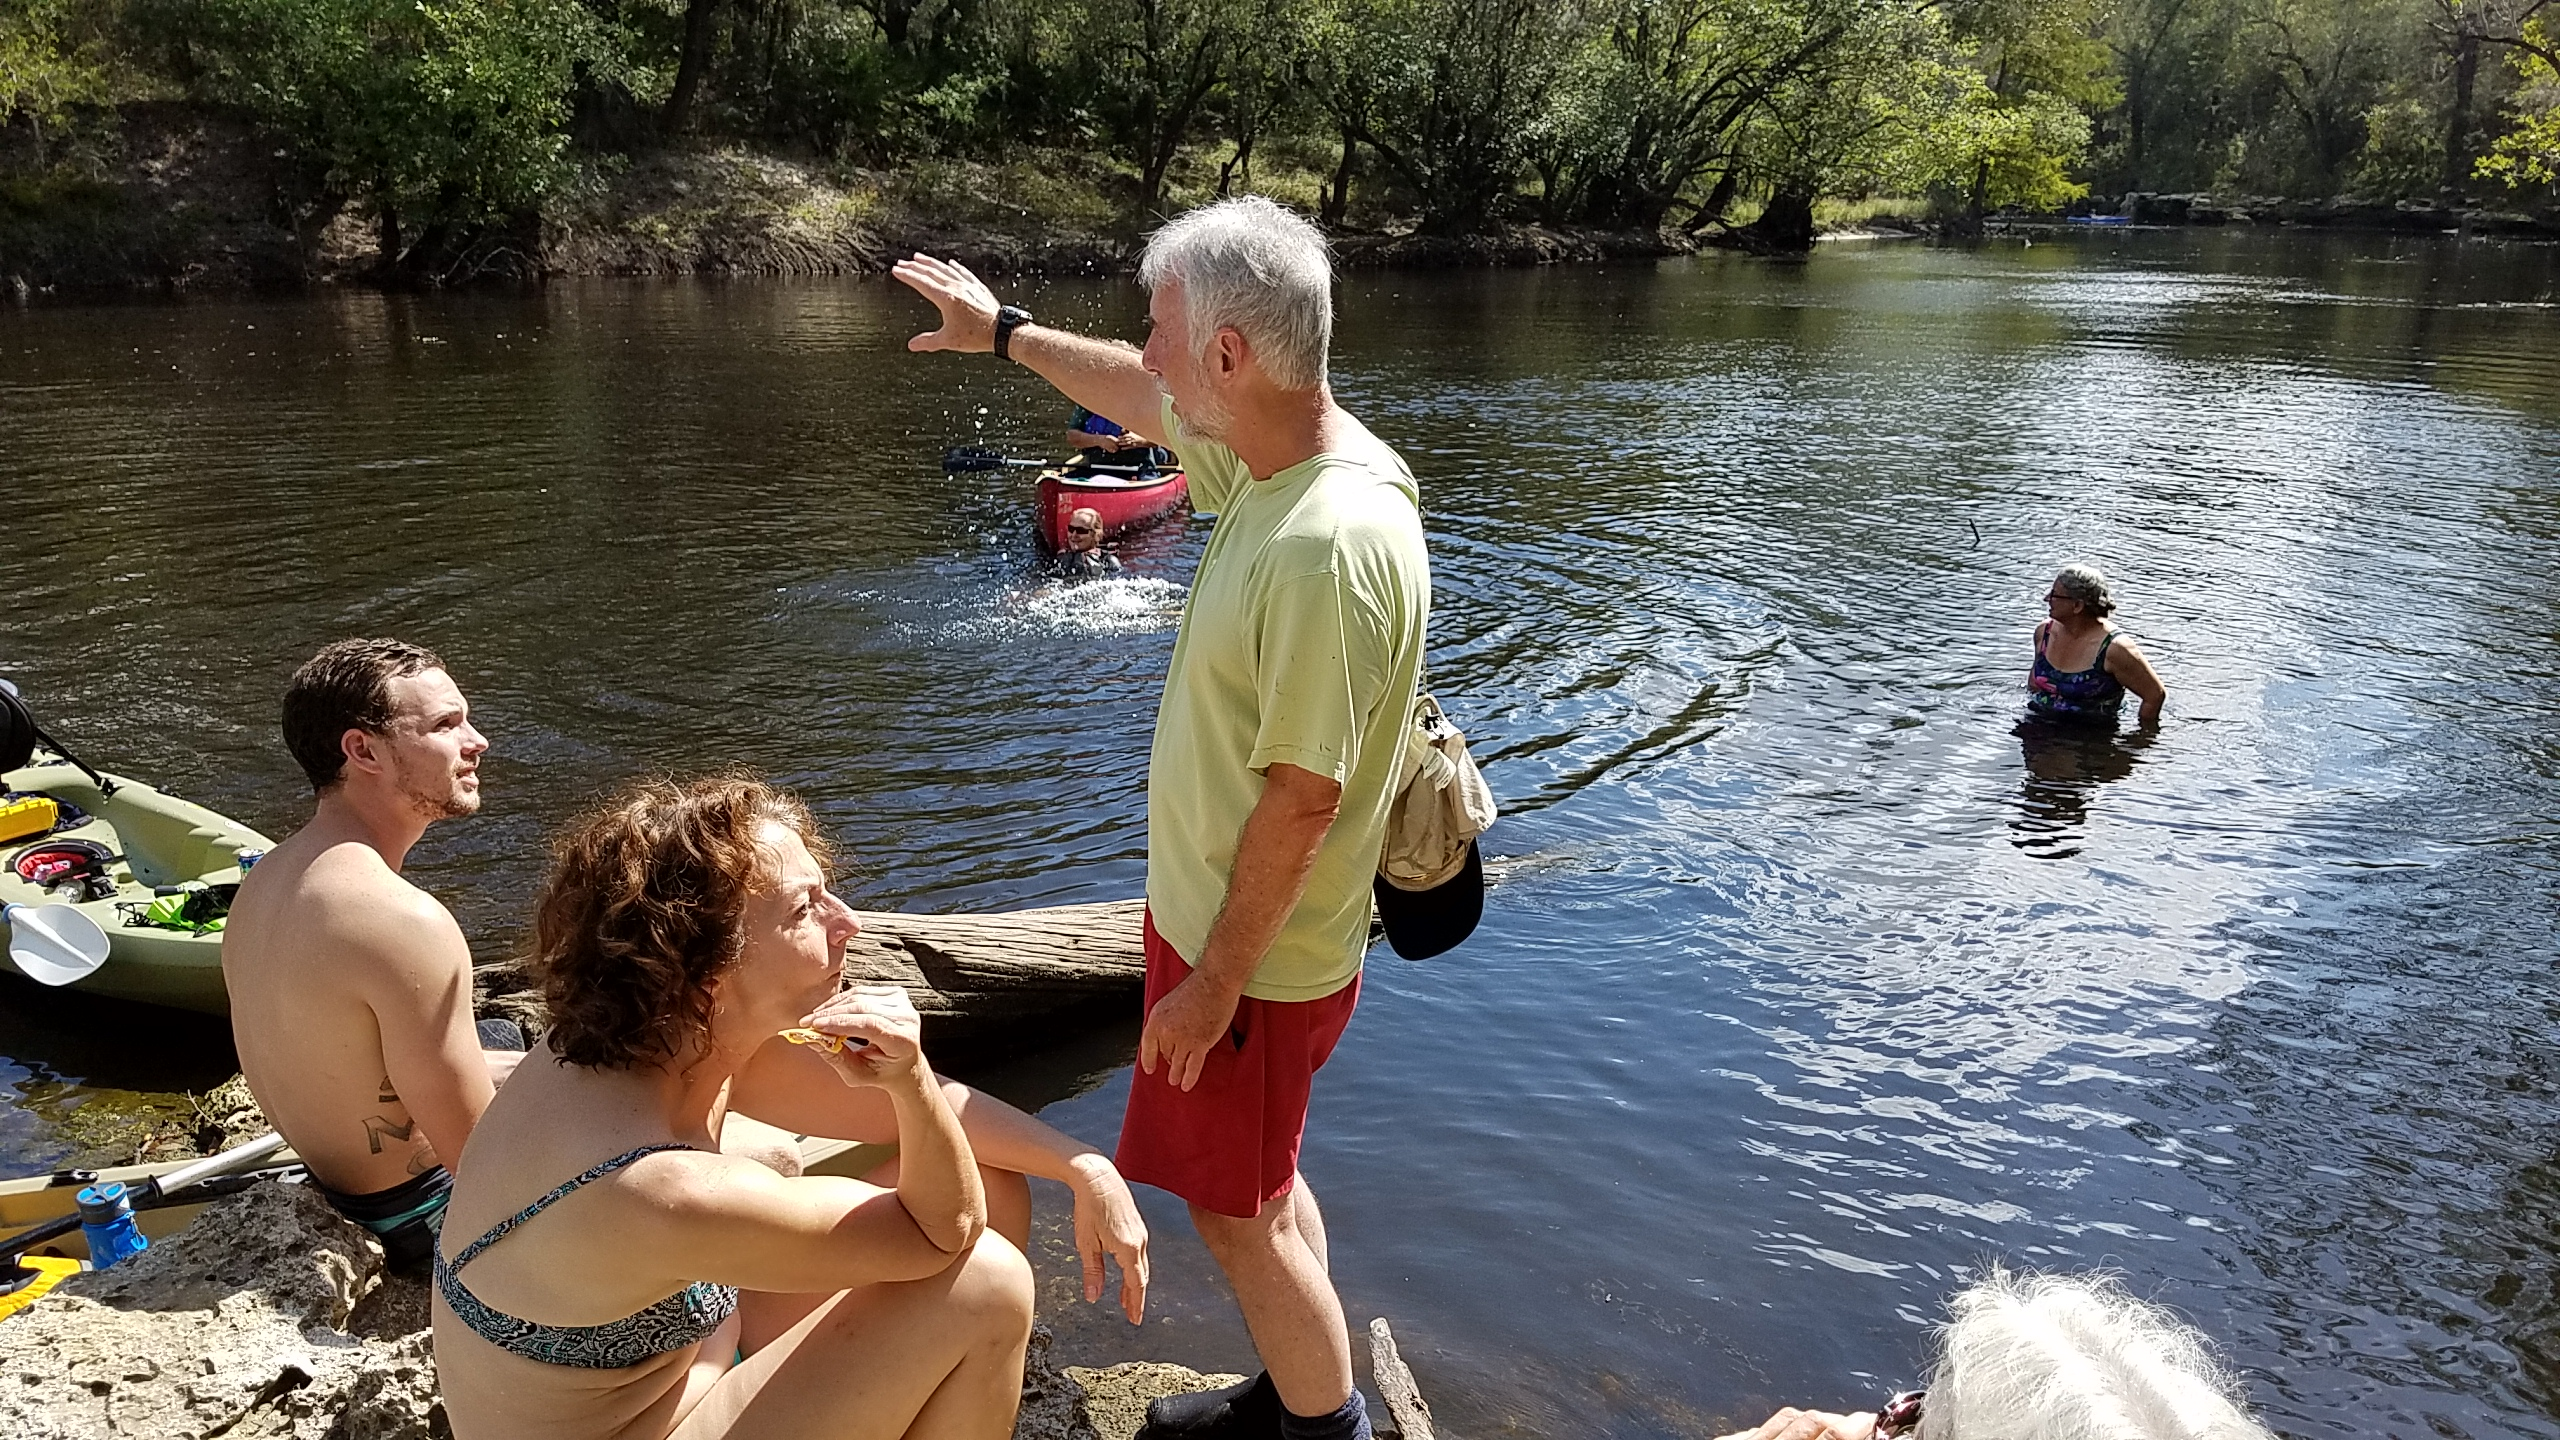 2560x1440 Guy Bryant explaining, McIntyre Spring, in Cleanup and outing, Nankin, Mcintyre and Arnold Springs, Mozell Spells, Withlacoochee River, by John S. Quarterman, for WWALS.net, 14 October 2017